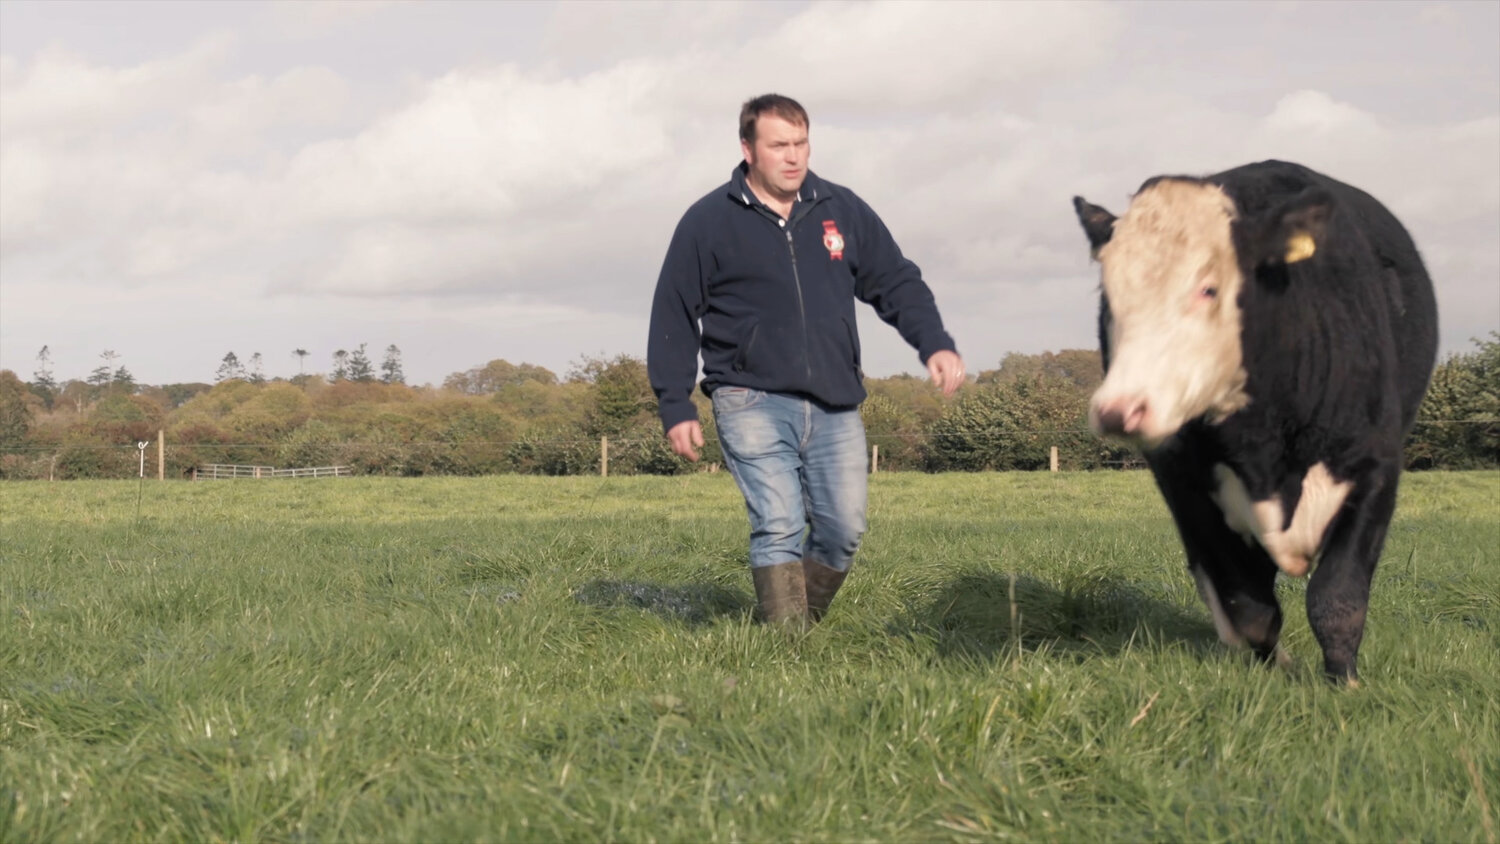 Richard Milligan and a Hereford steer on Autumn grass